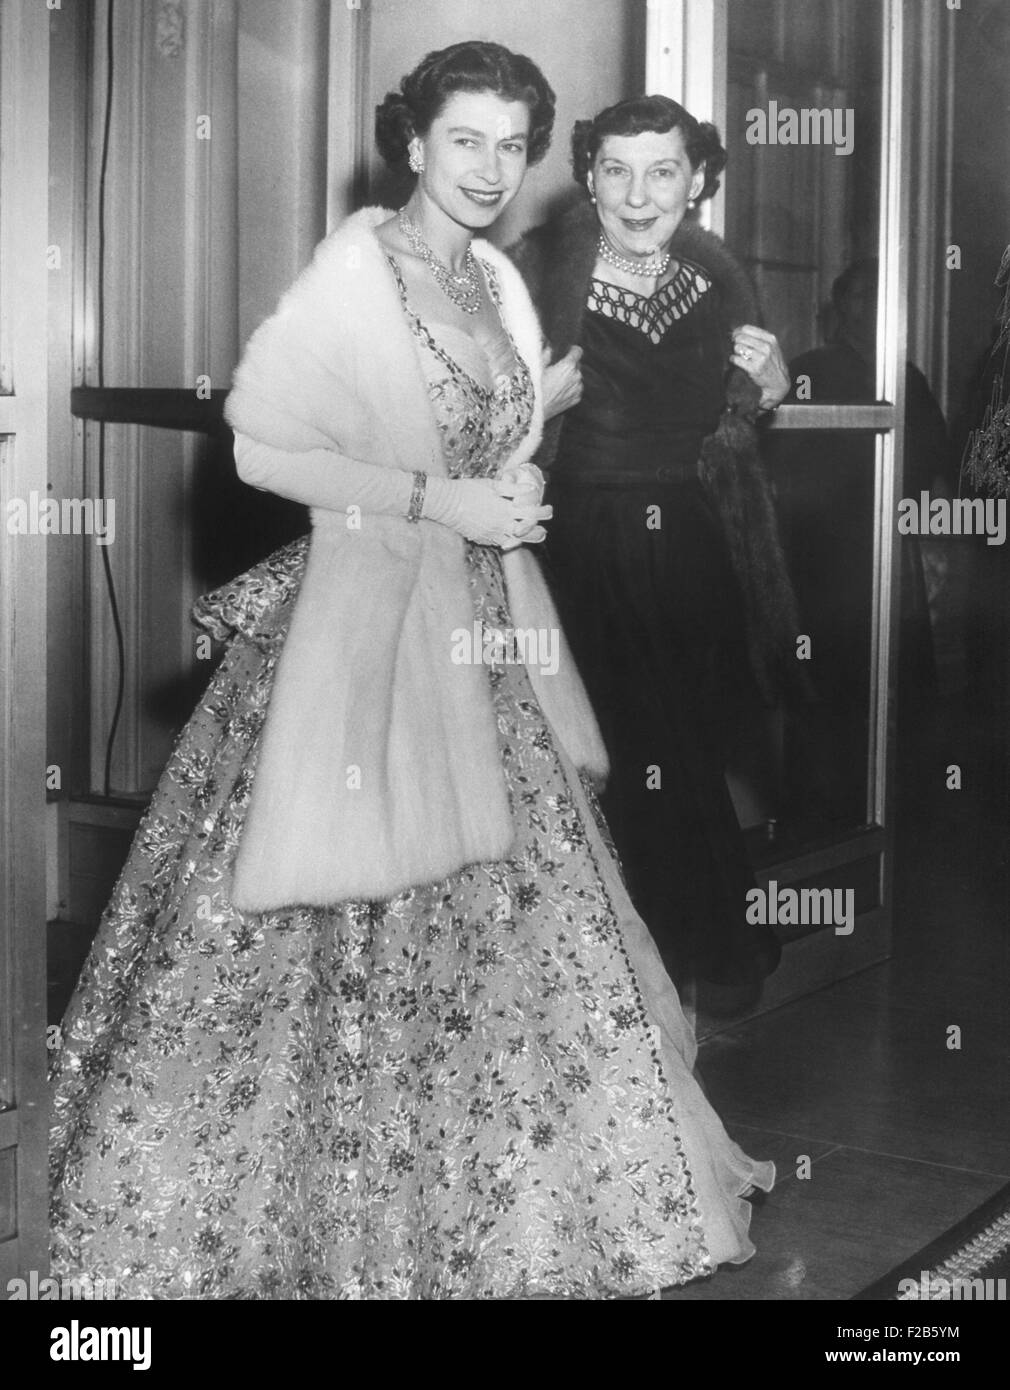 Queen Elizabeth II and Mamie Eisenhower in evening gowns at the British Embassy. Oct. 19, 1957. - (BSLOC_2014_16 - Stock Image